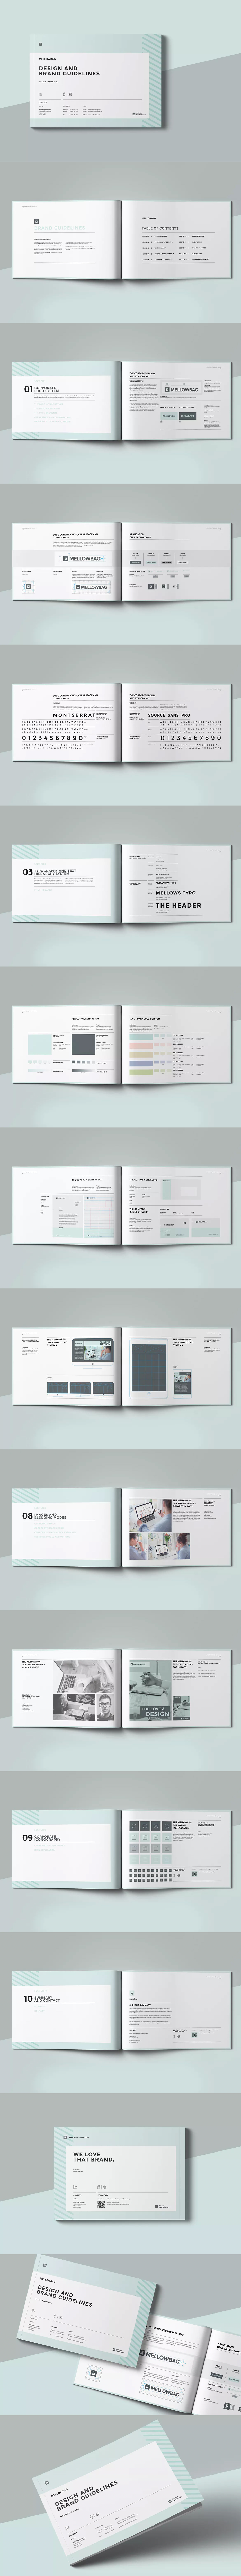 Brand Manual Landscape Brochure Template InDesign INDD - A4 and US ...